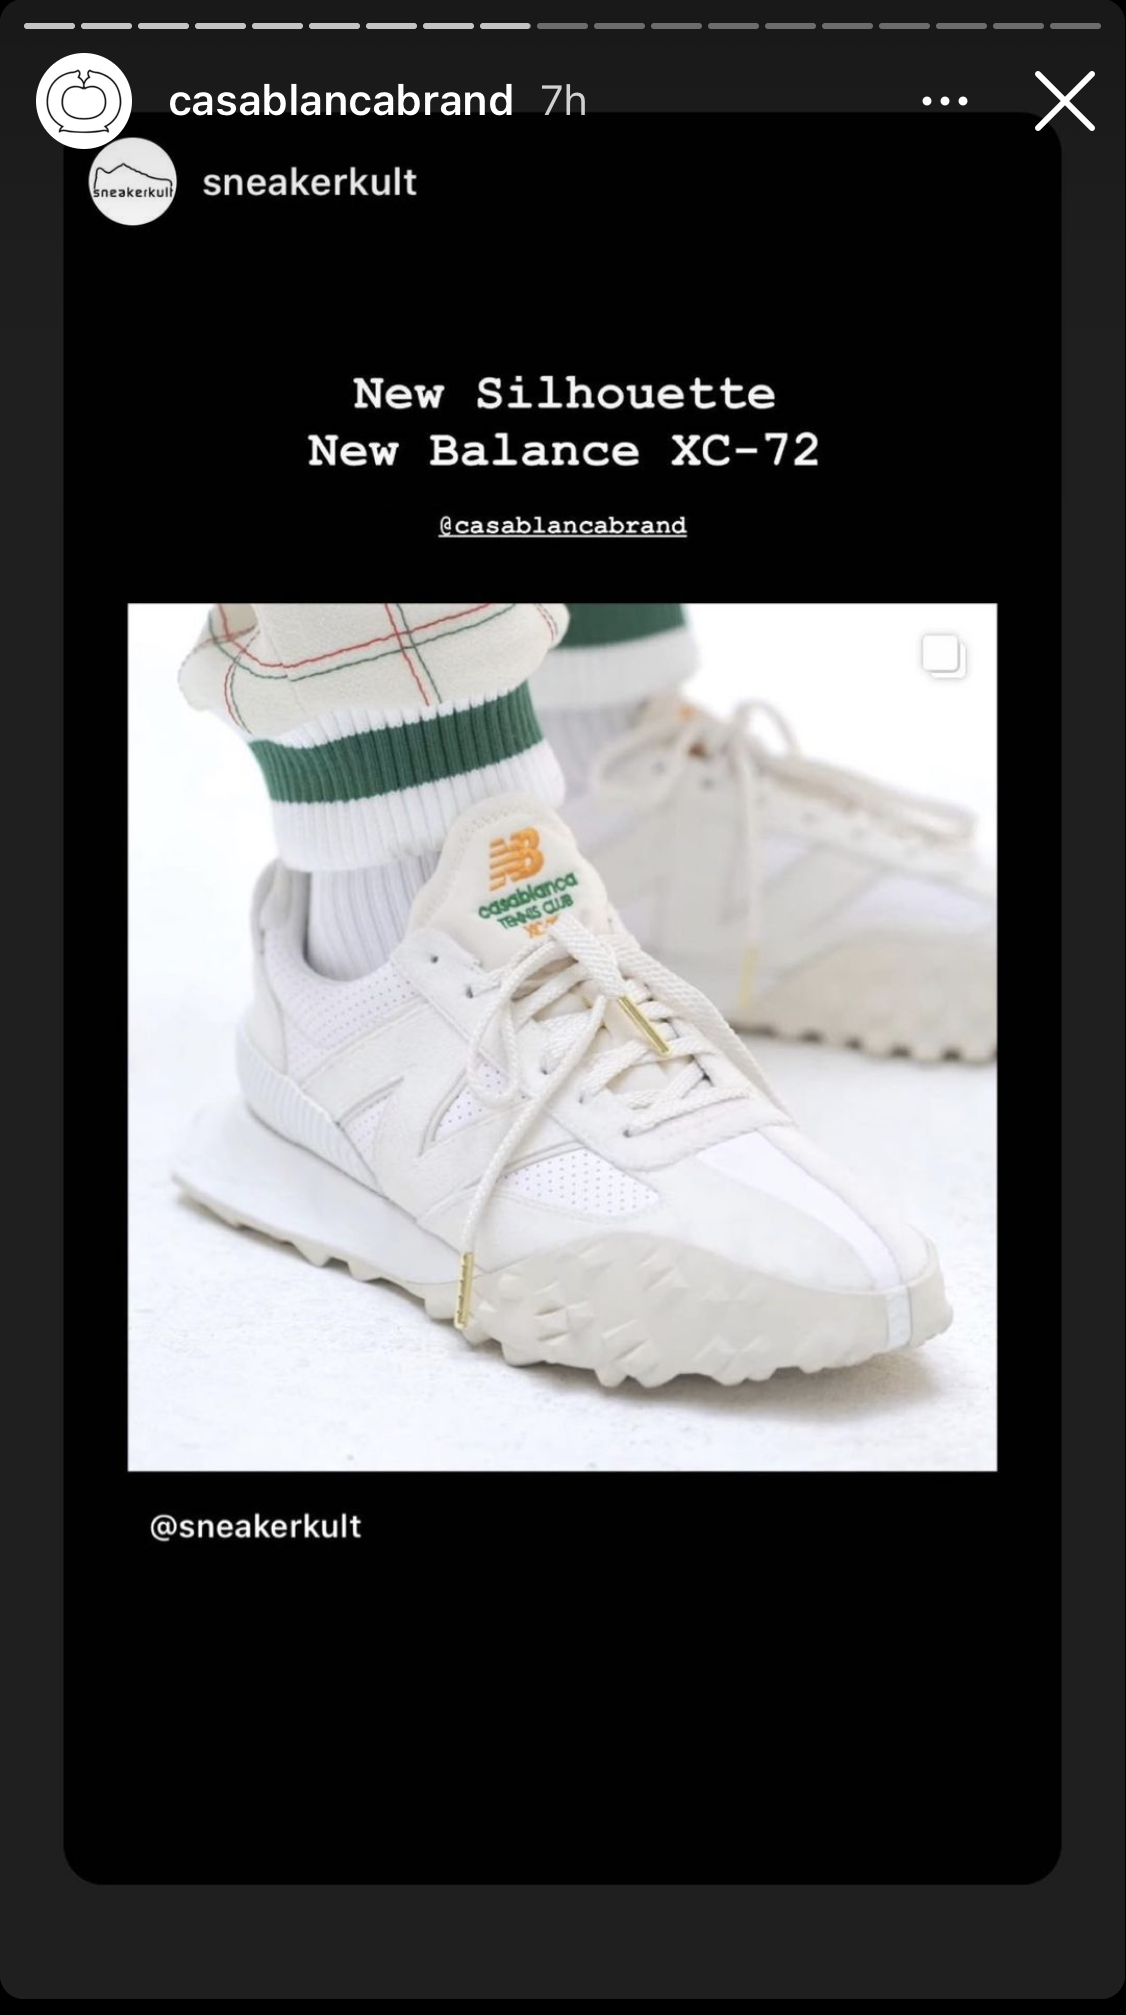 New Balance XC-72: A New Silhouette for Fall 21 With